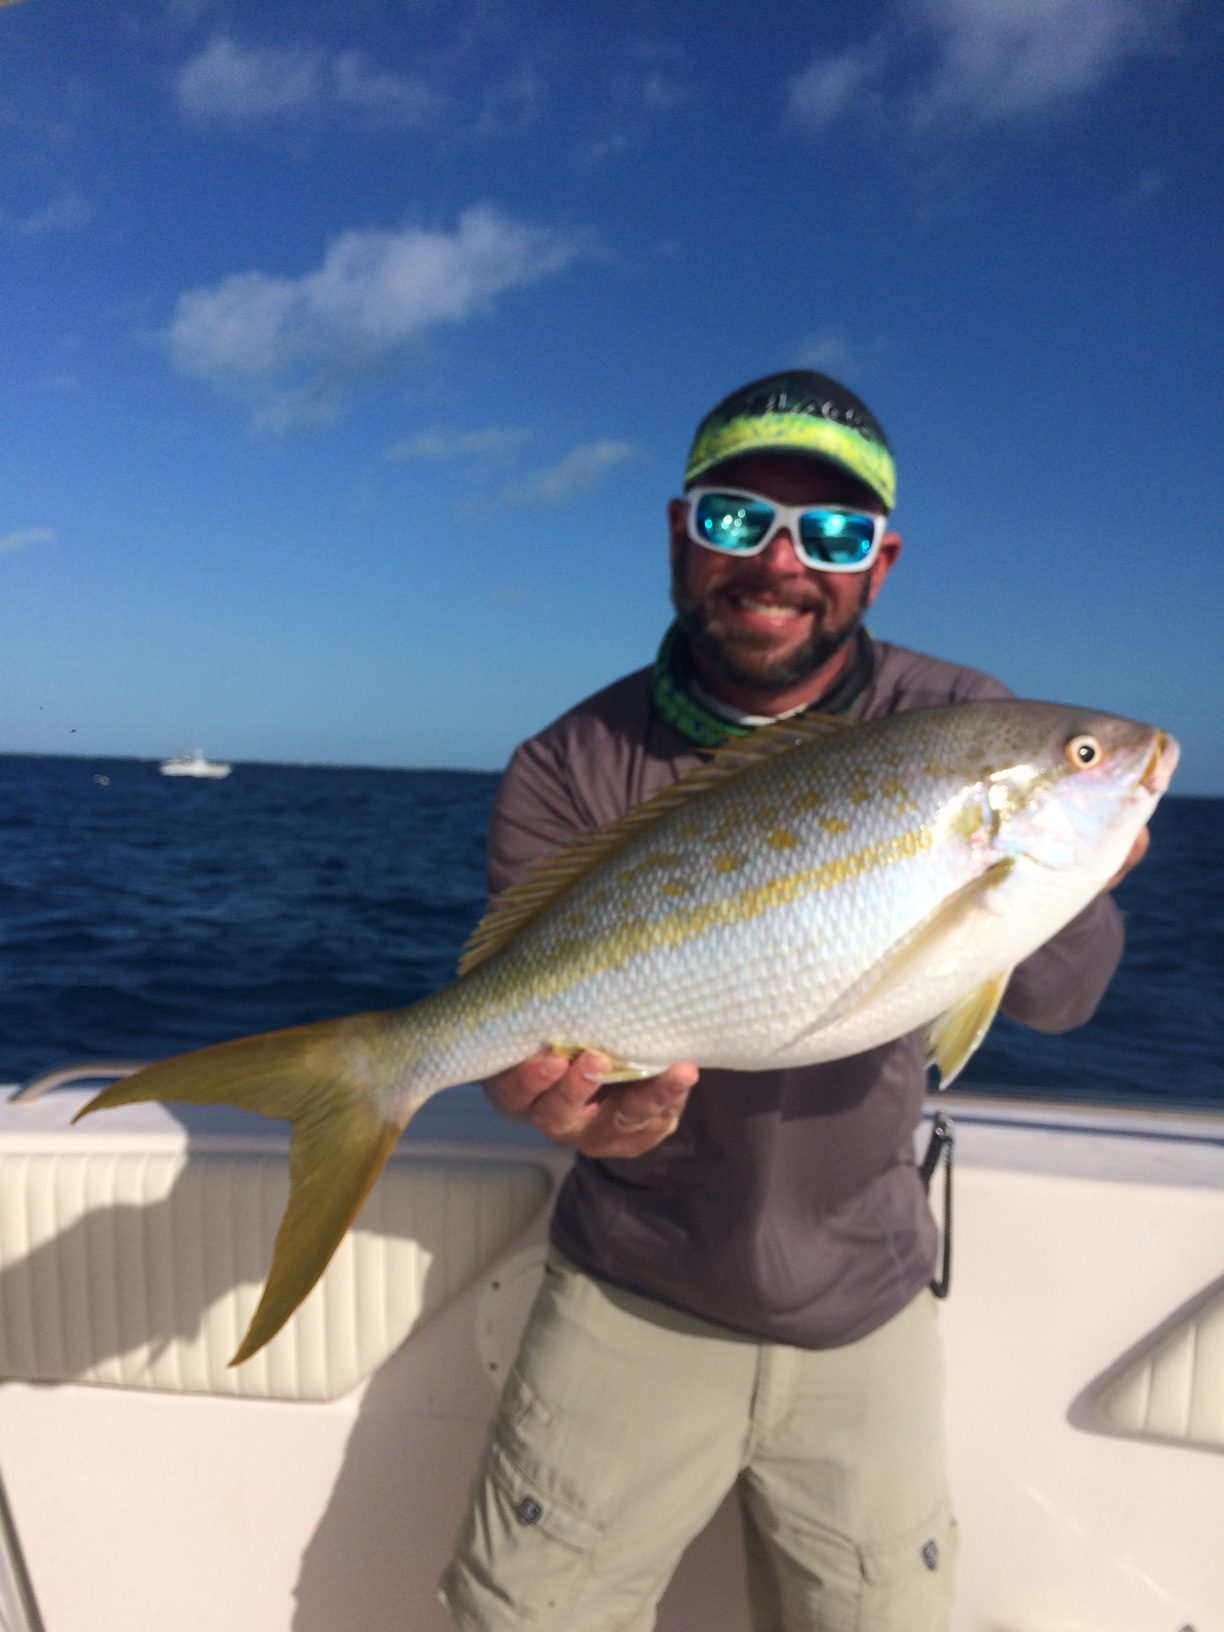 Monster yellowtail snapper caught with Capt. Doug on a reef charter off Marathon in the Fl Keys.